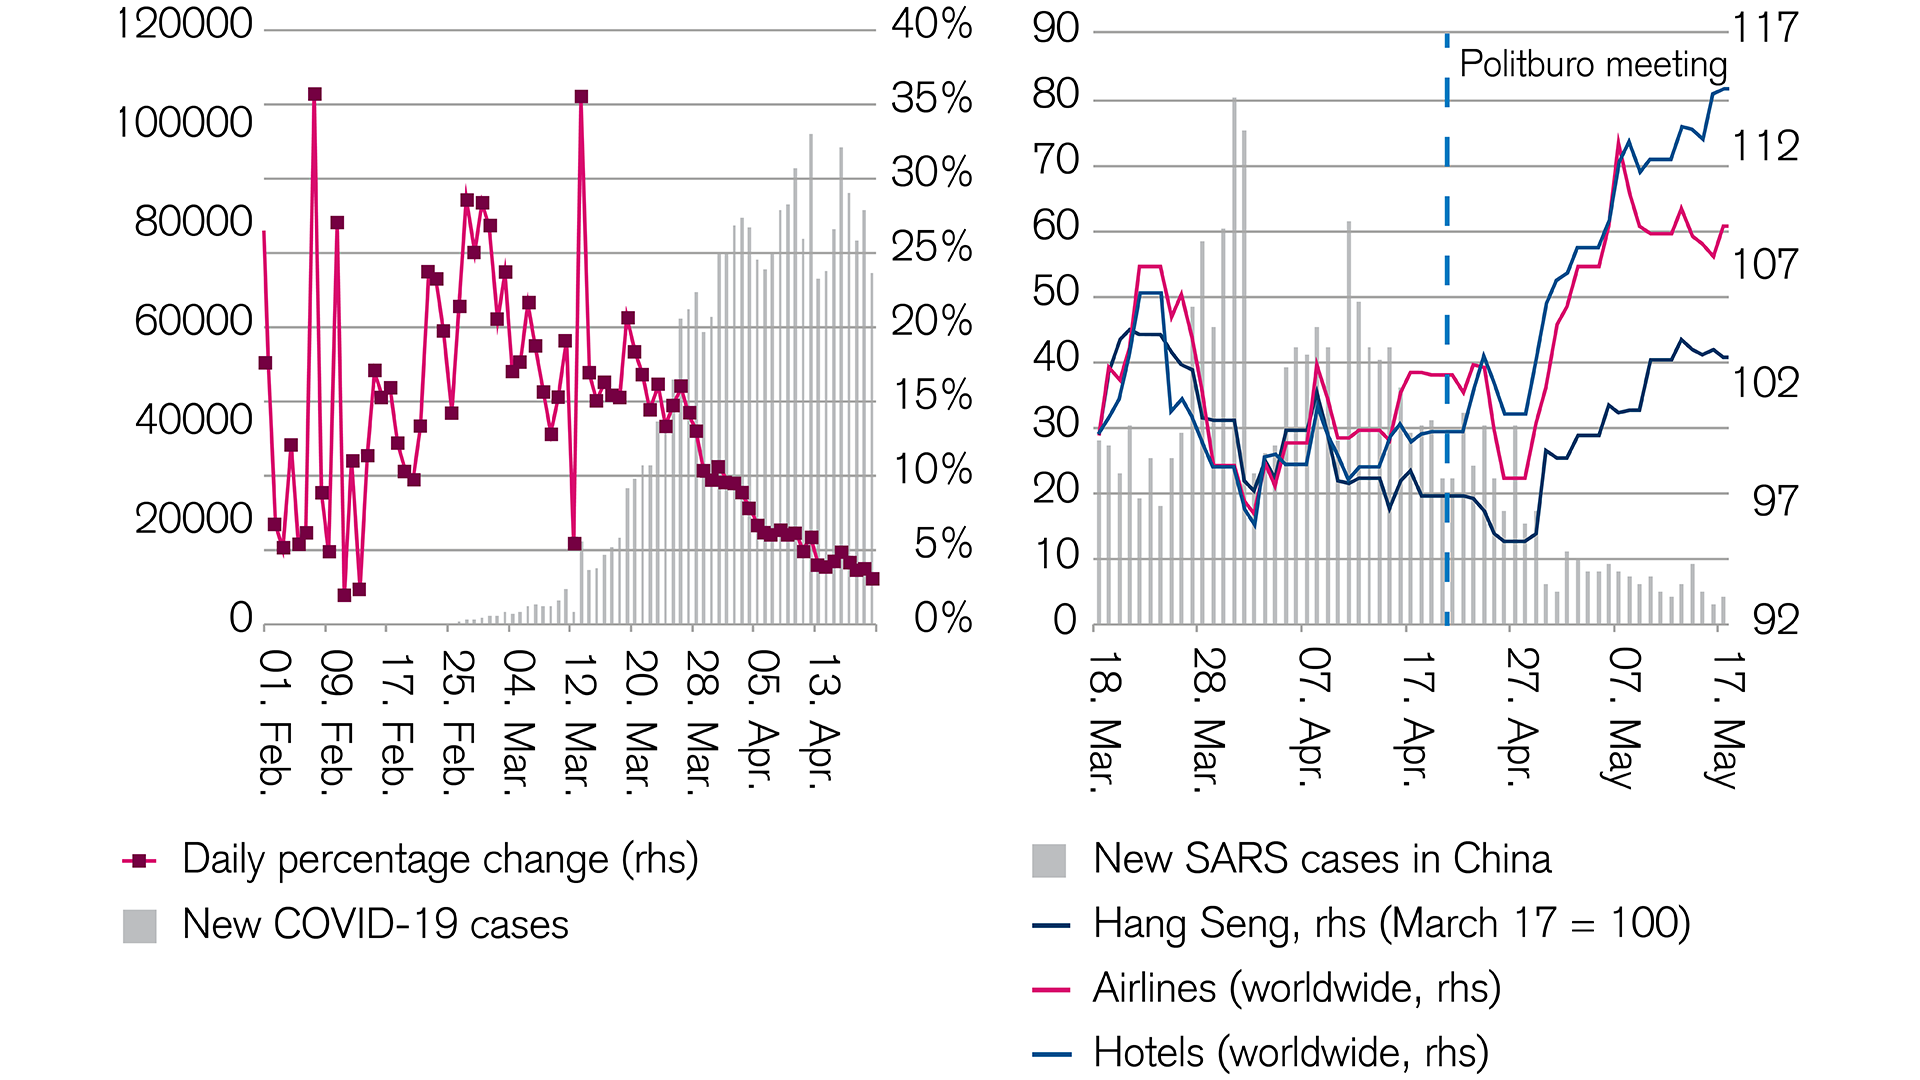 A comparison with the SARS crisis raises hopes for the equity market